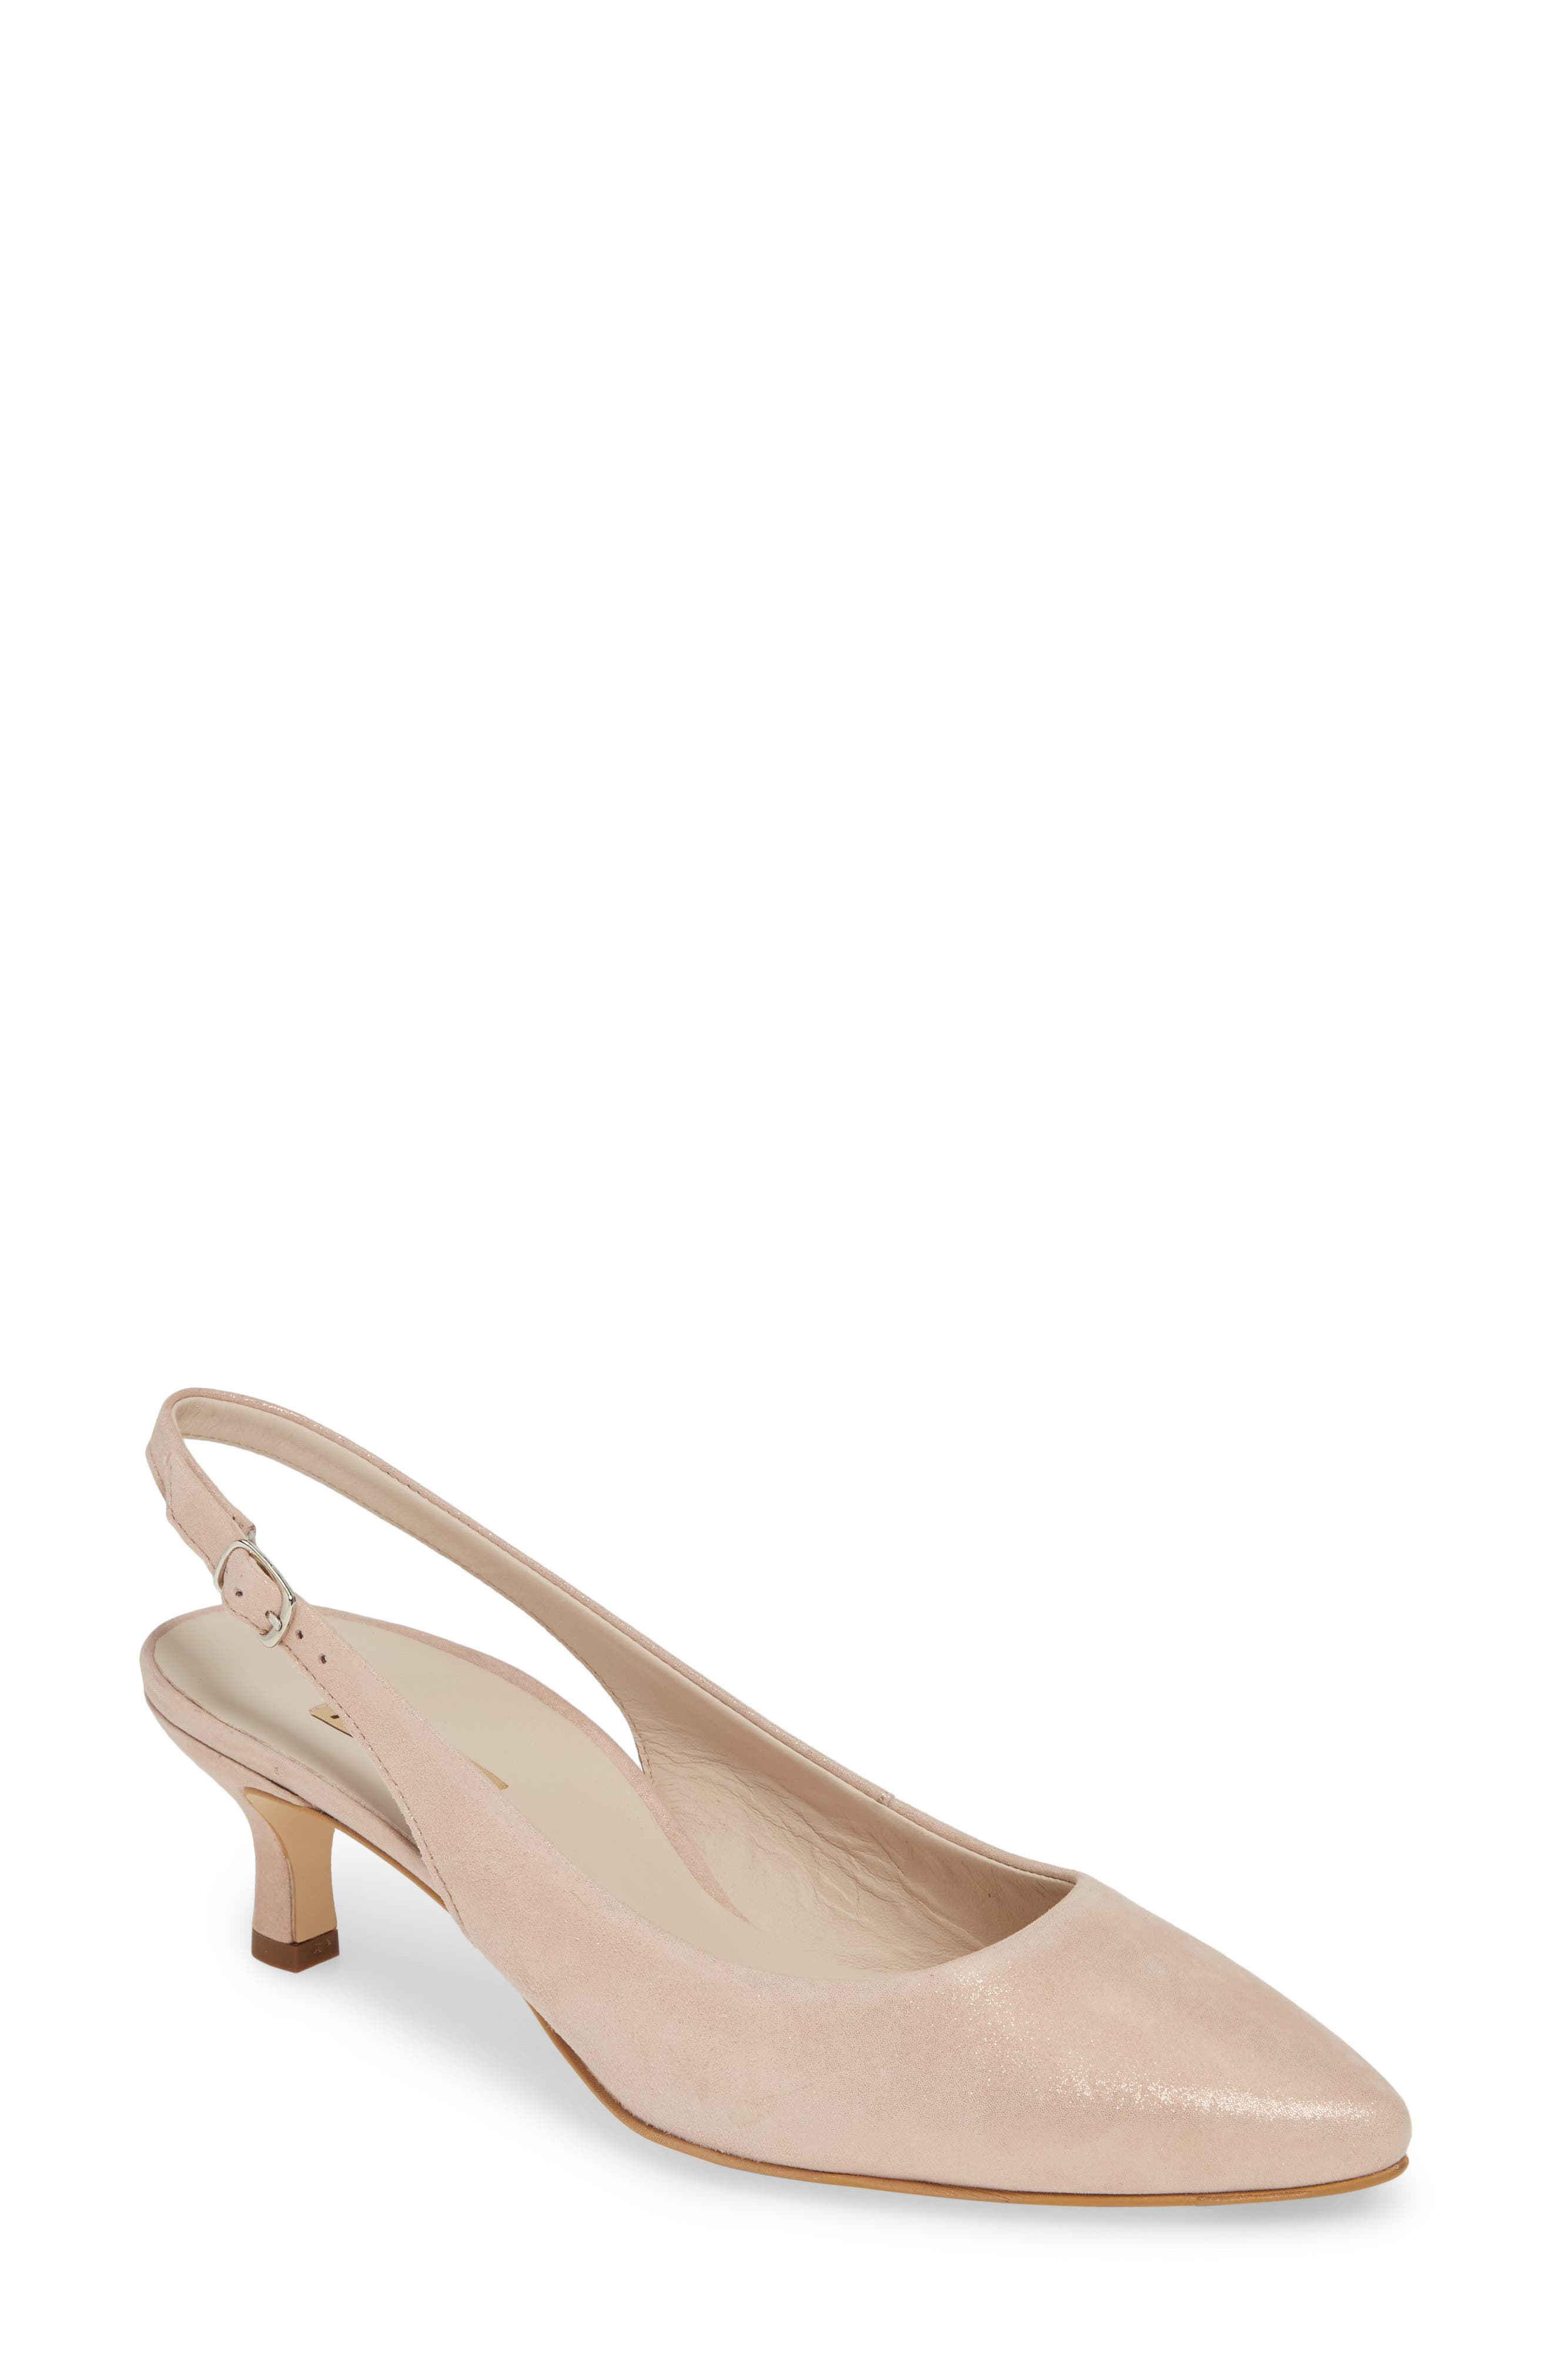 364ce9b6f4 Women's Paul Green Pumps | Nordstrom